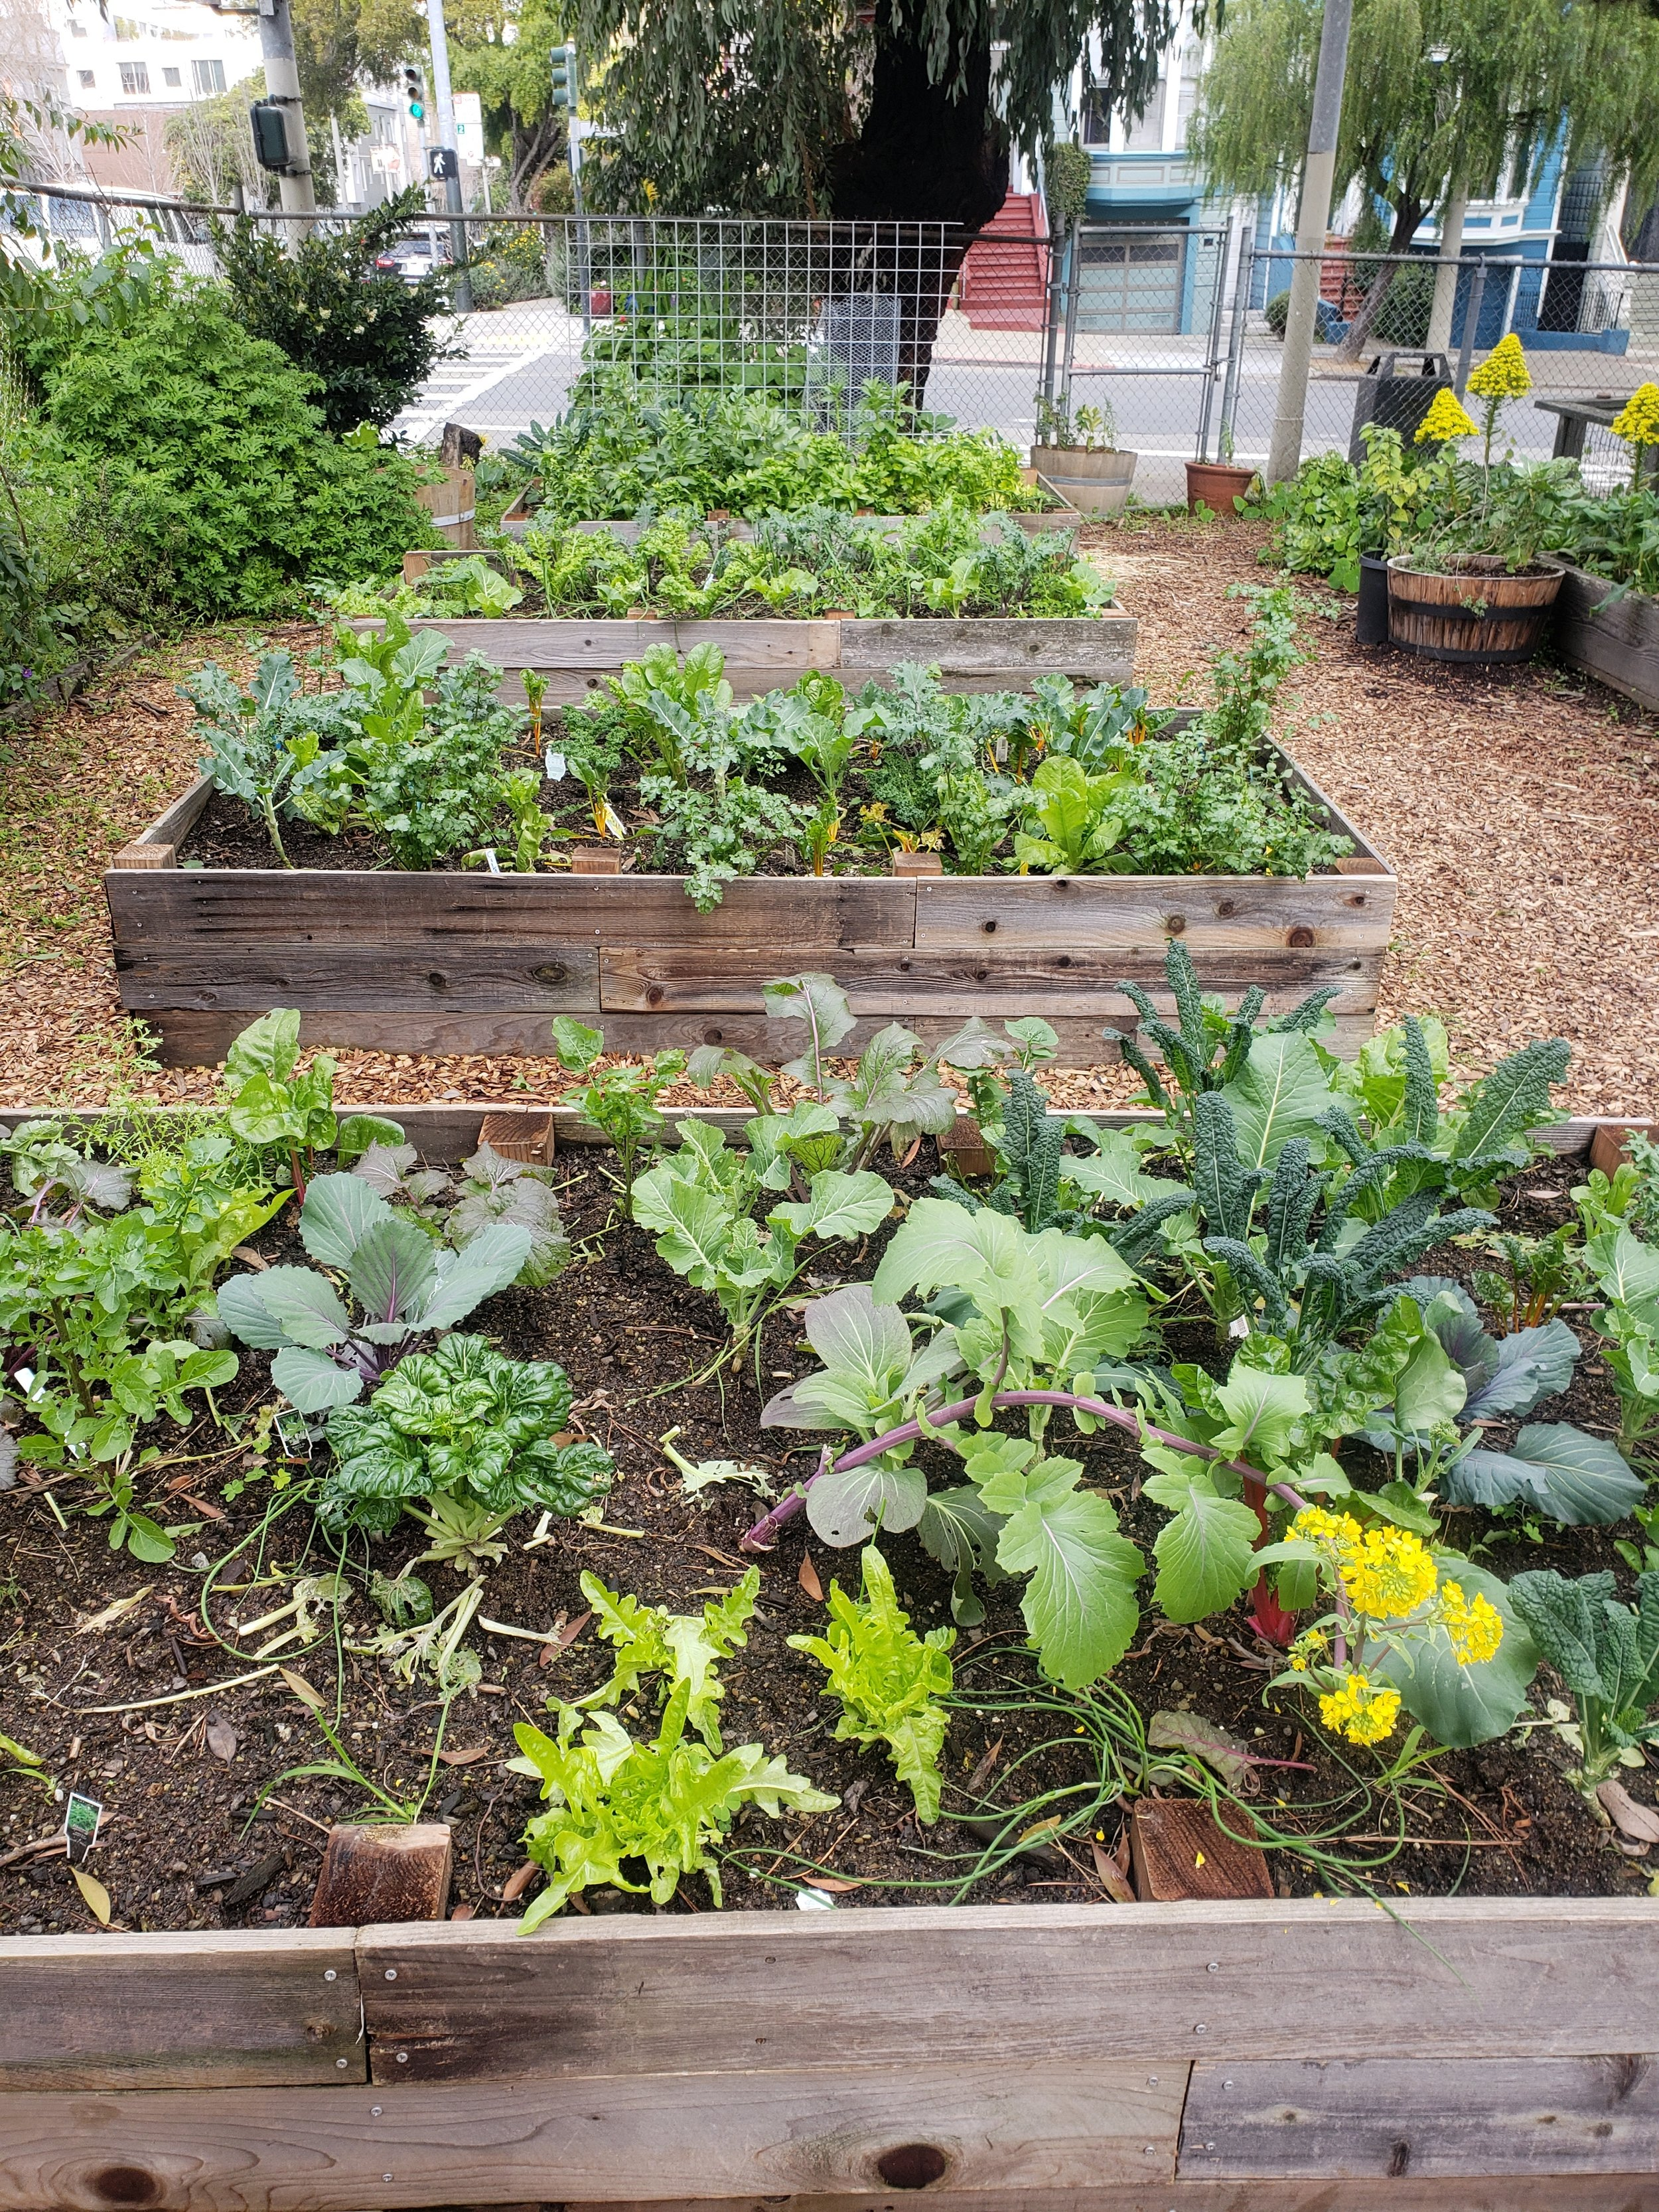 Photos: A bountiful community garden installed by Planting Justice's Community Justice Garden Program in San Francisco (occupied Ohlone territory) at Farming Hope pictured in three consecutive months.  Photos courtesy of Farming Hope & brontë velez